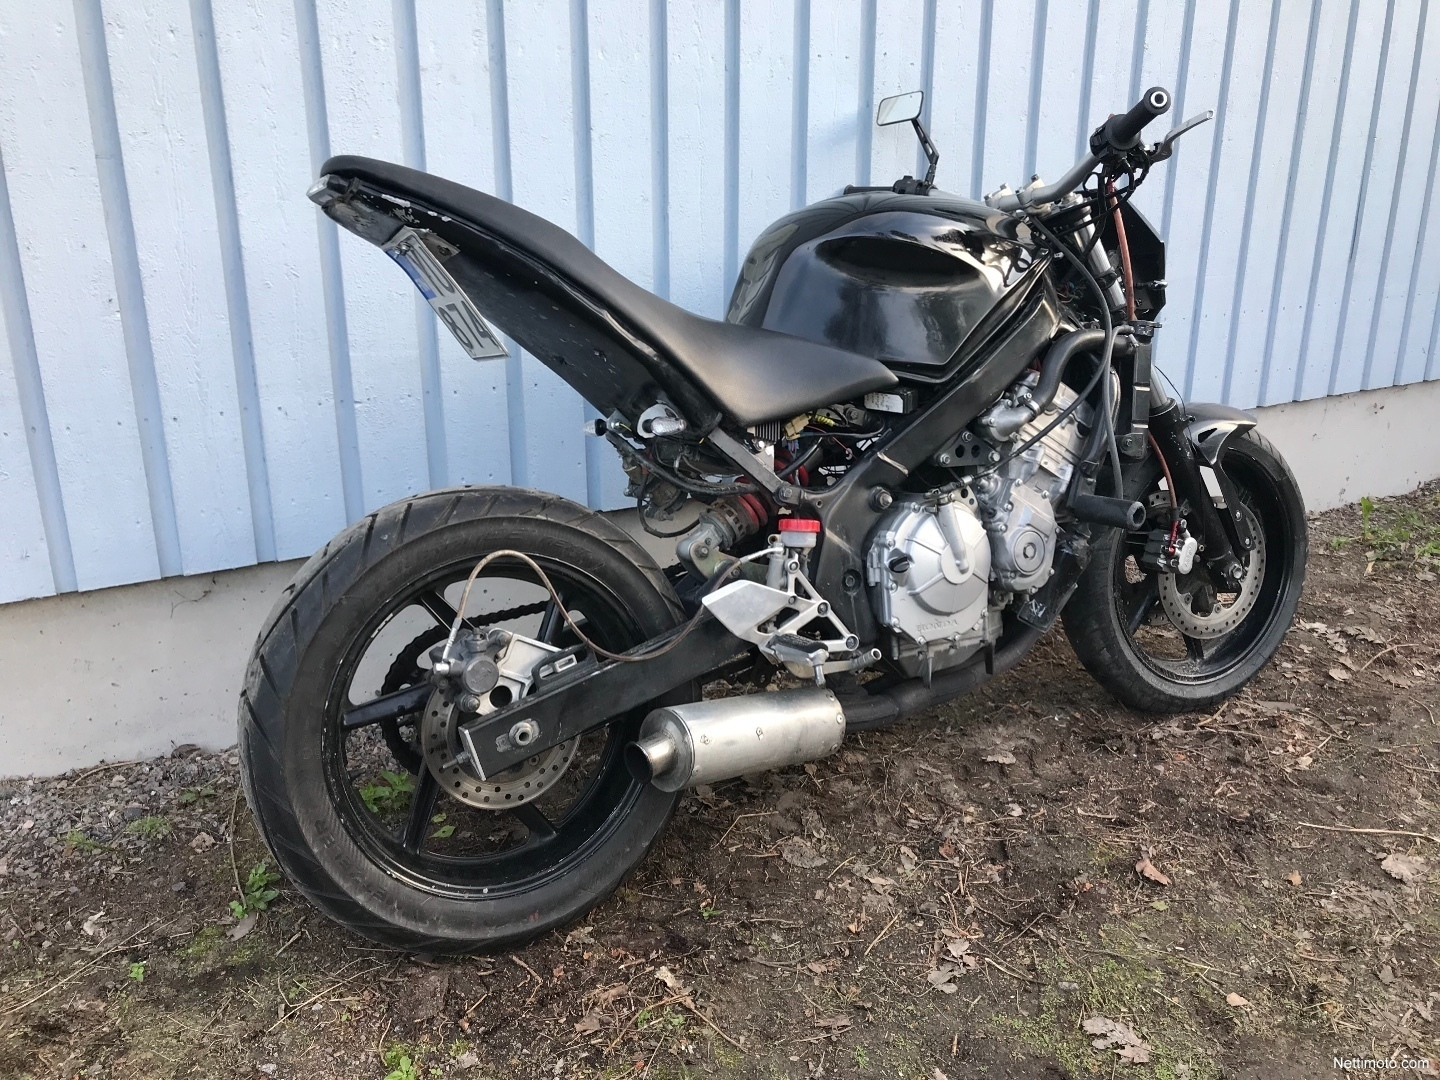 honda cbr 600 f pc25 streetfighter 600 cm 1994 tuusula motorcycle nettimoto. Black Bedroom Furniture Sets. Home Design Ideas